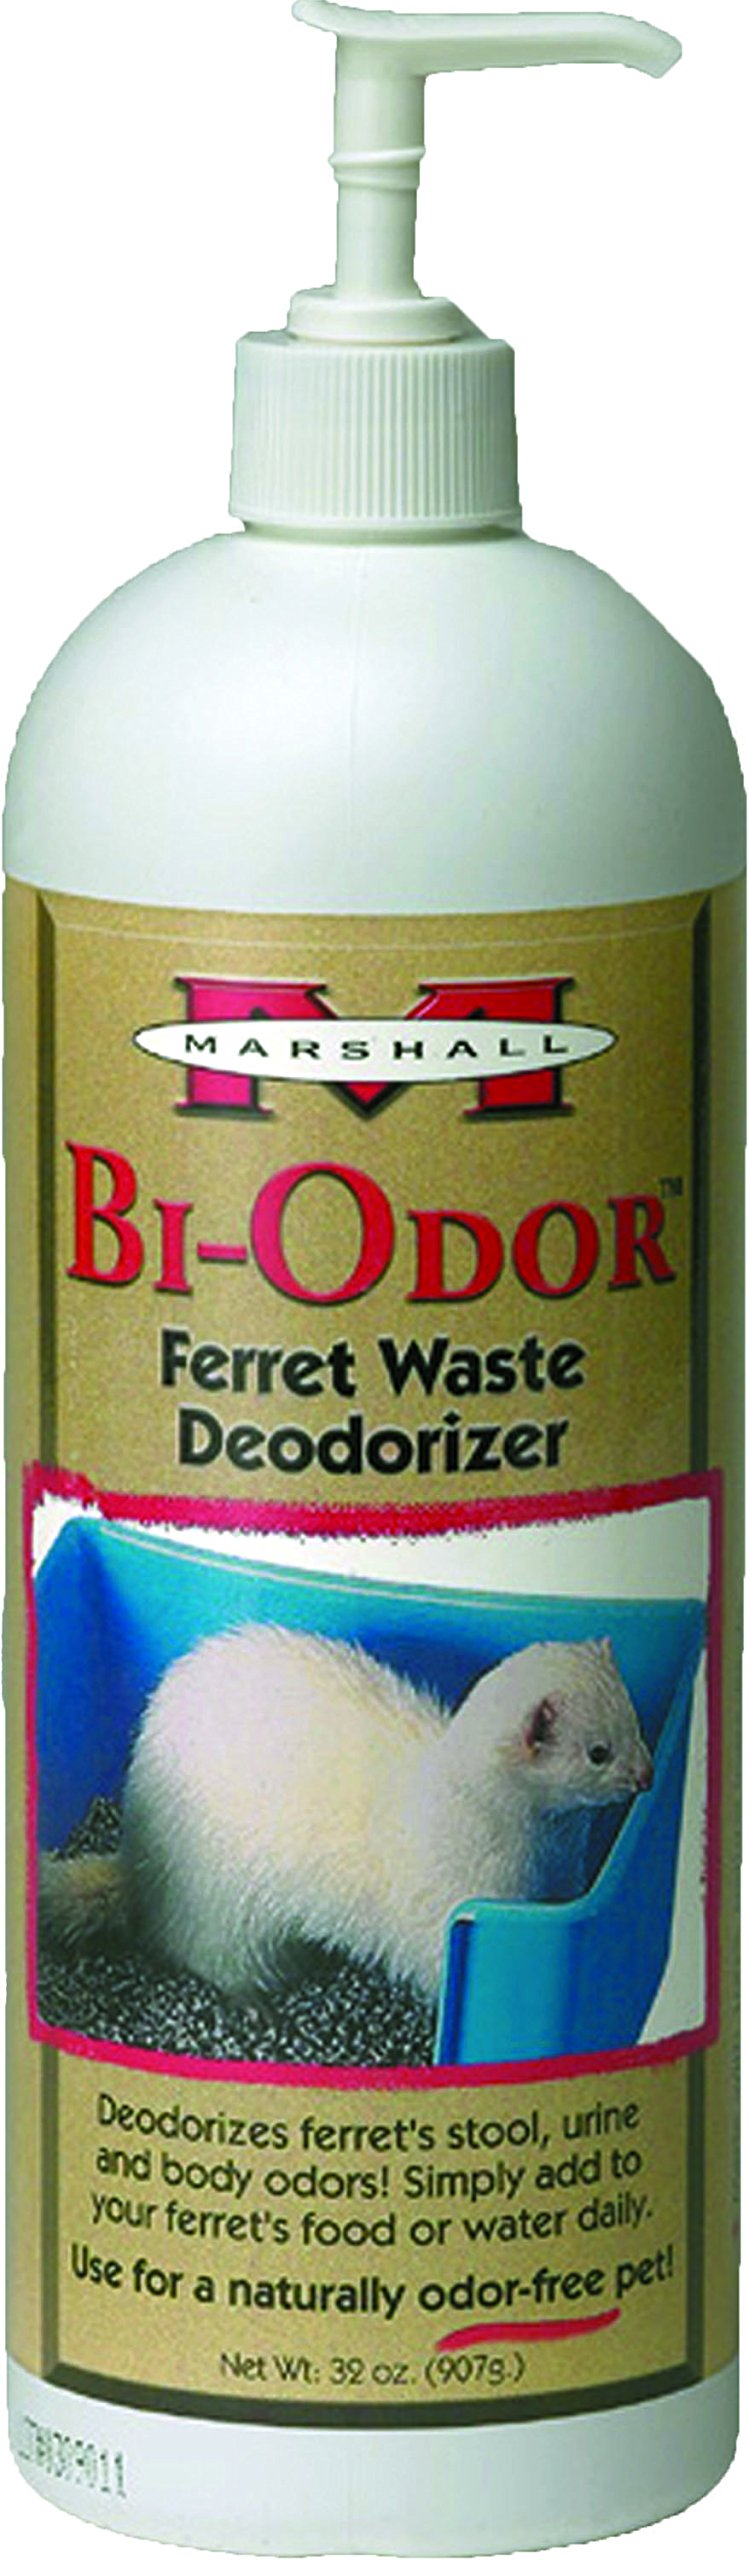 GoodBye Odor for Ferrets, 32 Ounce by Marshall Pet Products